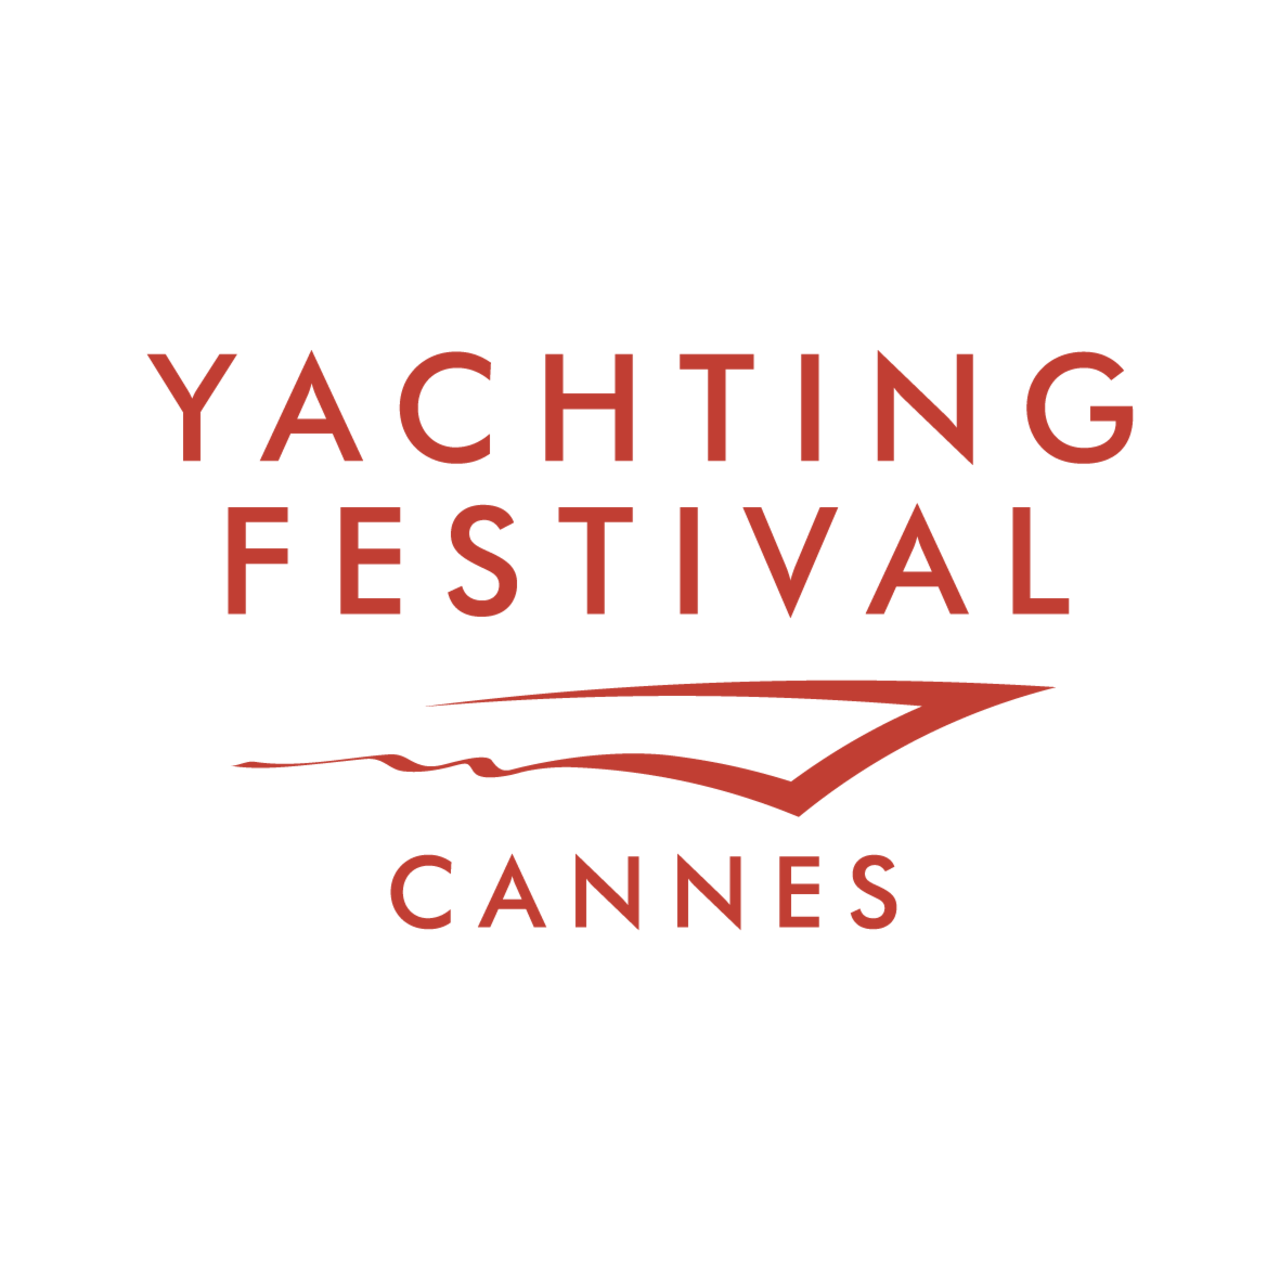 Yachting Festival Cannes | France